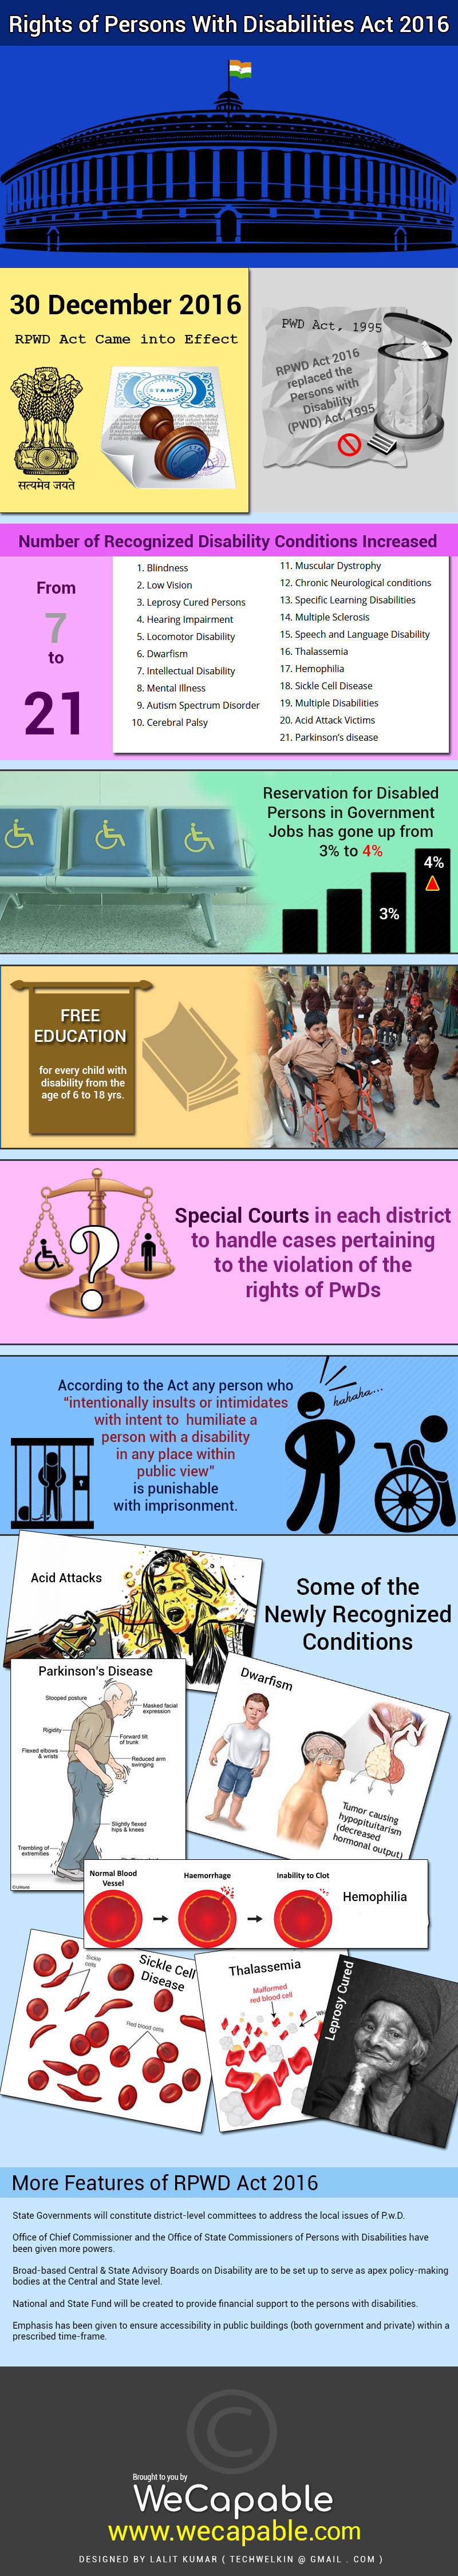 Overview of Rights of Persons With Disabilities Act, 2016 Infographic